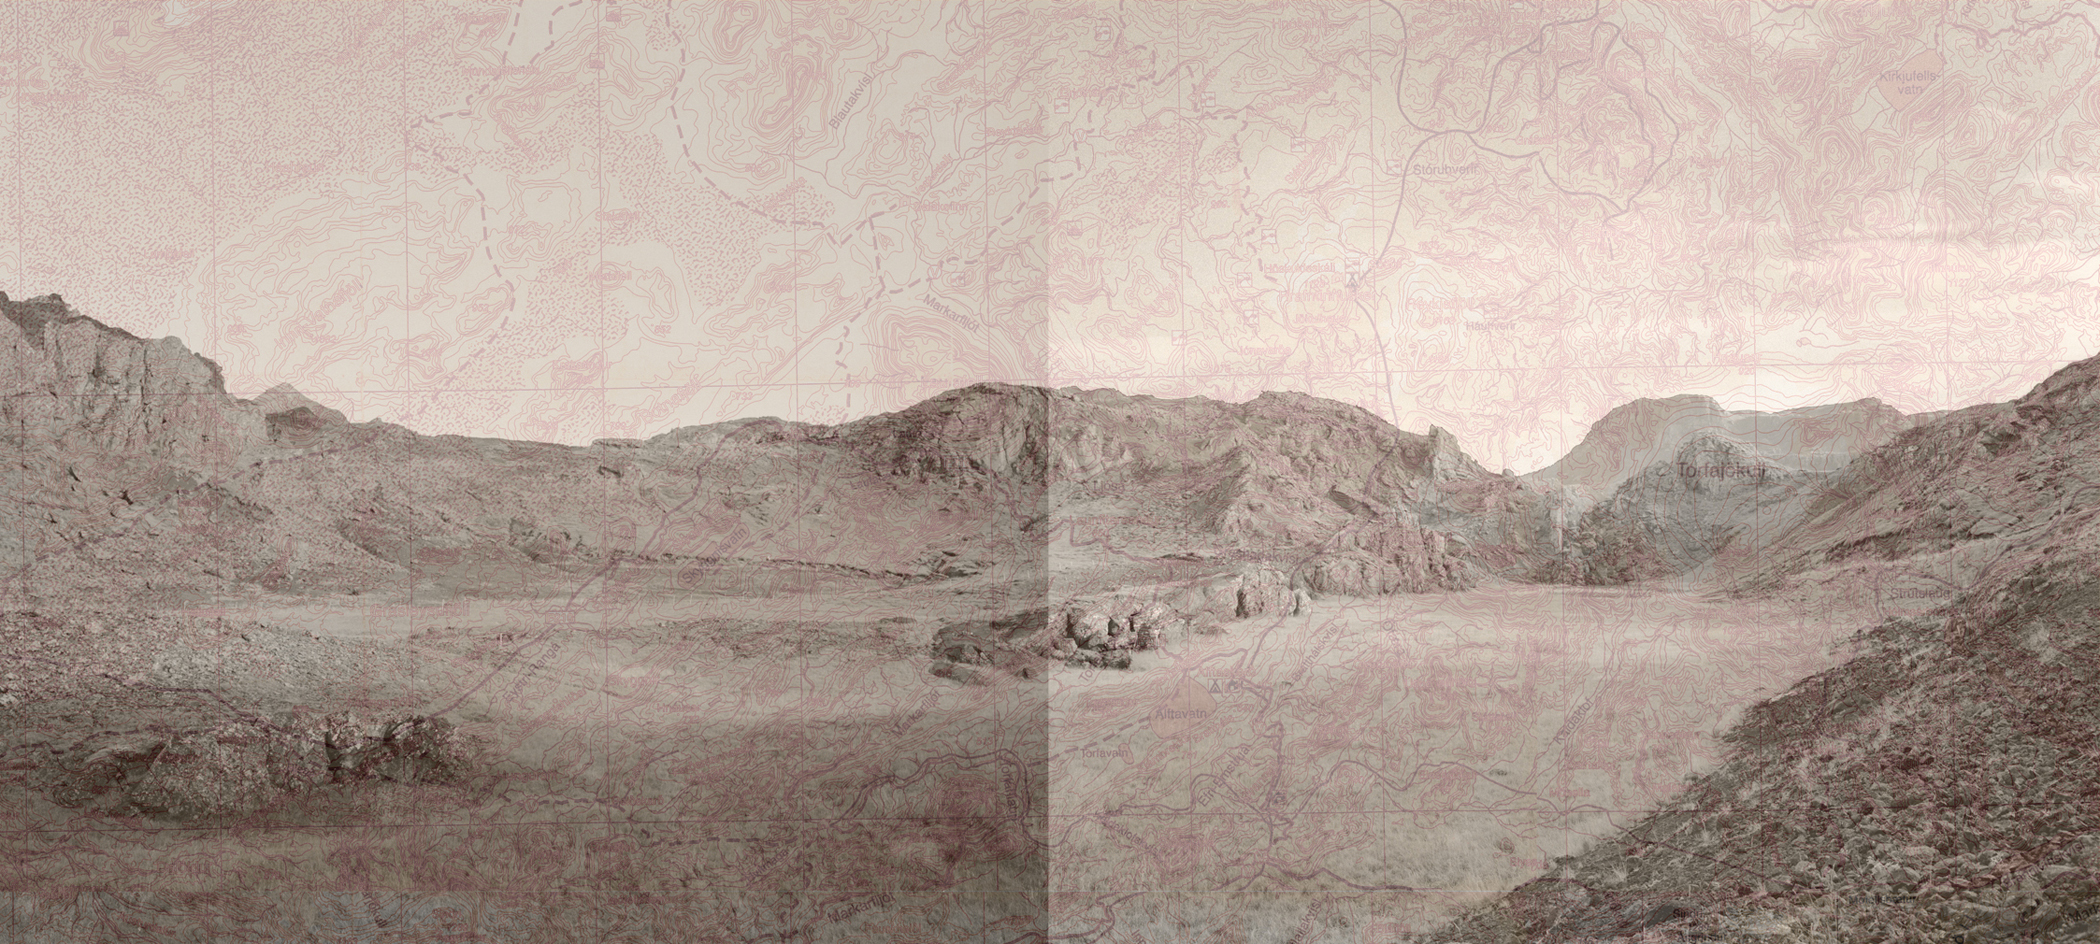 """Volcanic Crater Diptych, 2006   Archival digital pigment print collage on Thai Mulberry, in two layers,Edition of 6   28"""" X 62.3"""""""